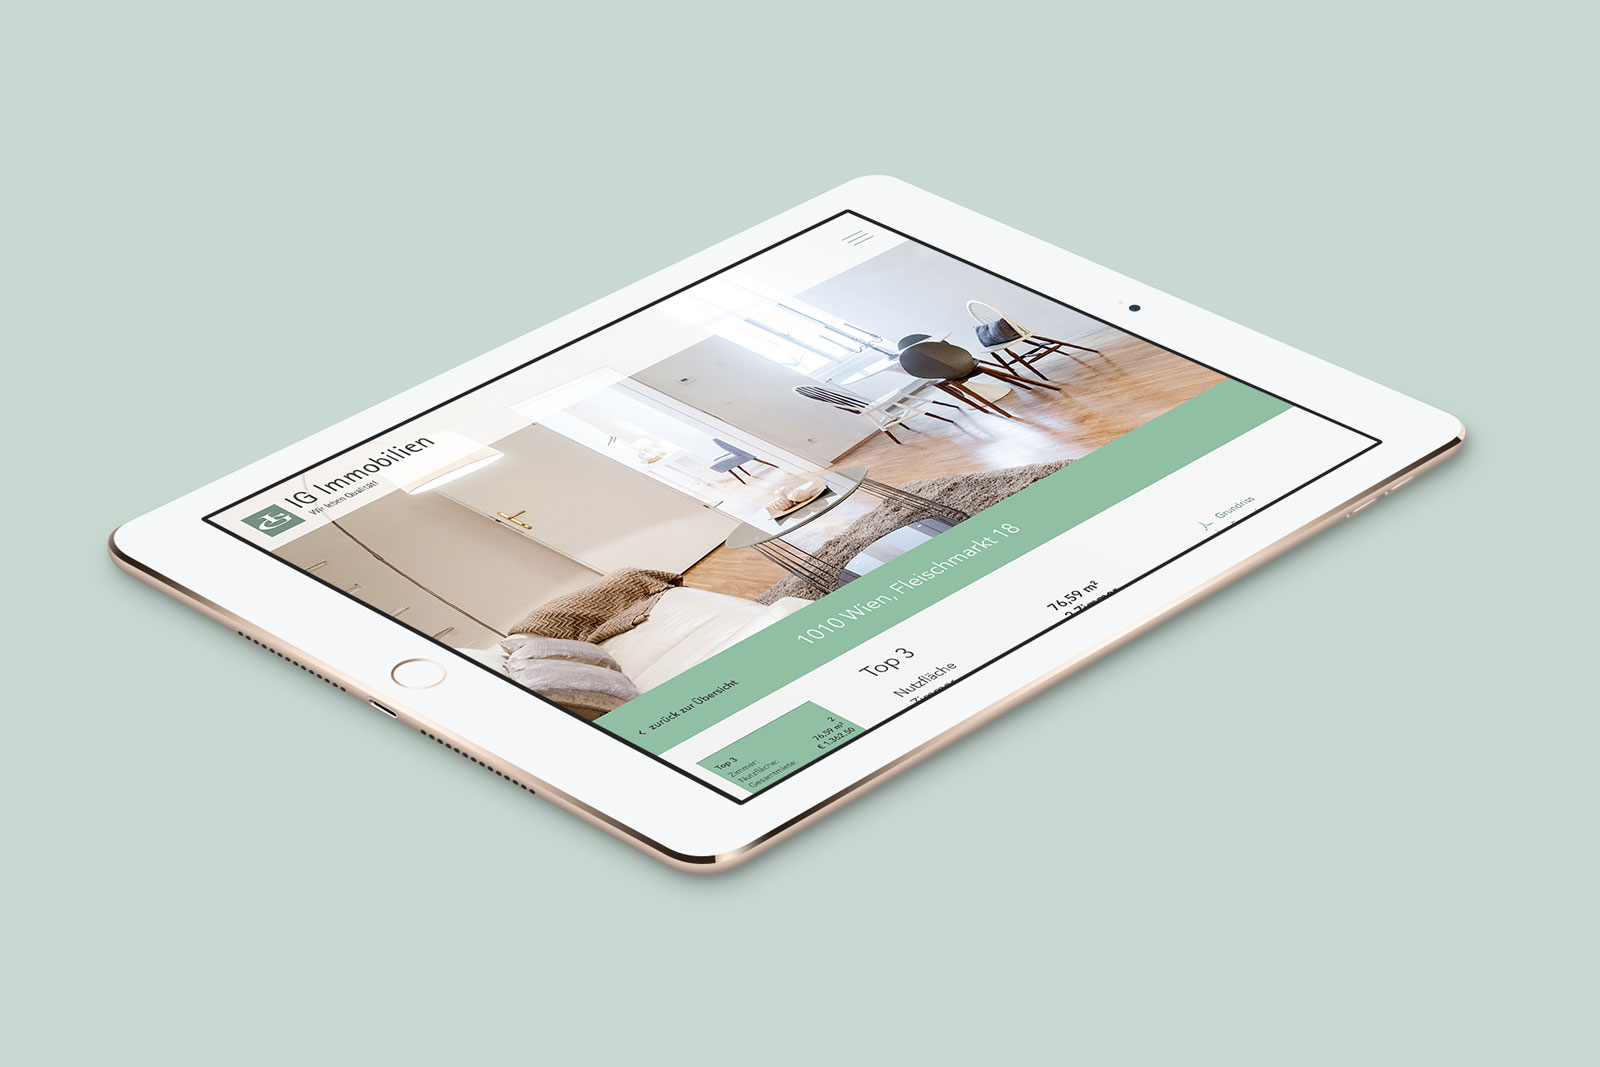 Ig Immobilien Ipad 03